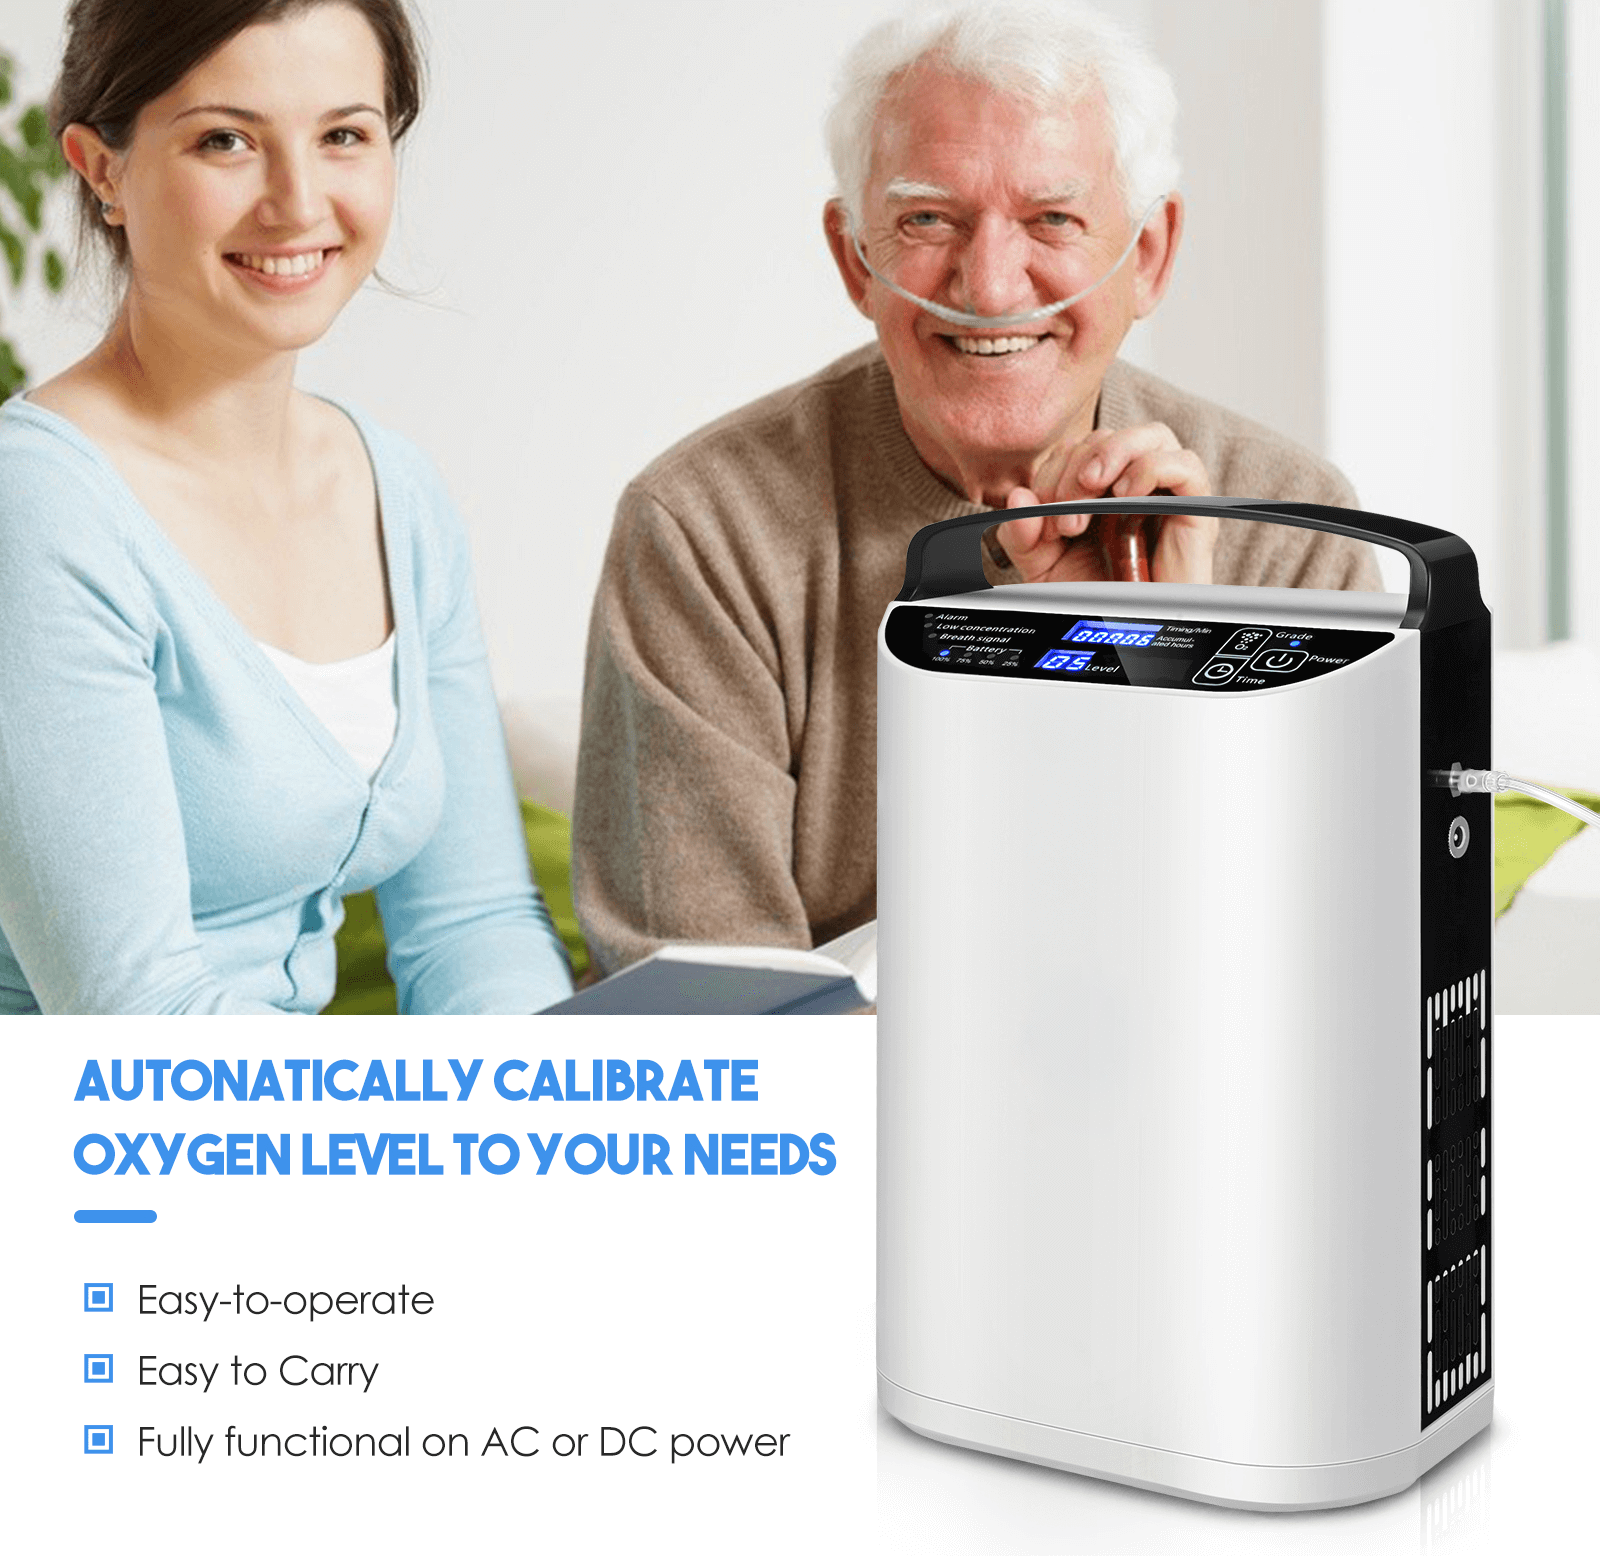 How To Clean Everflo Oxygen Concentrator Filter